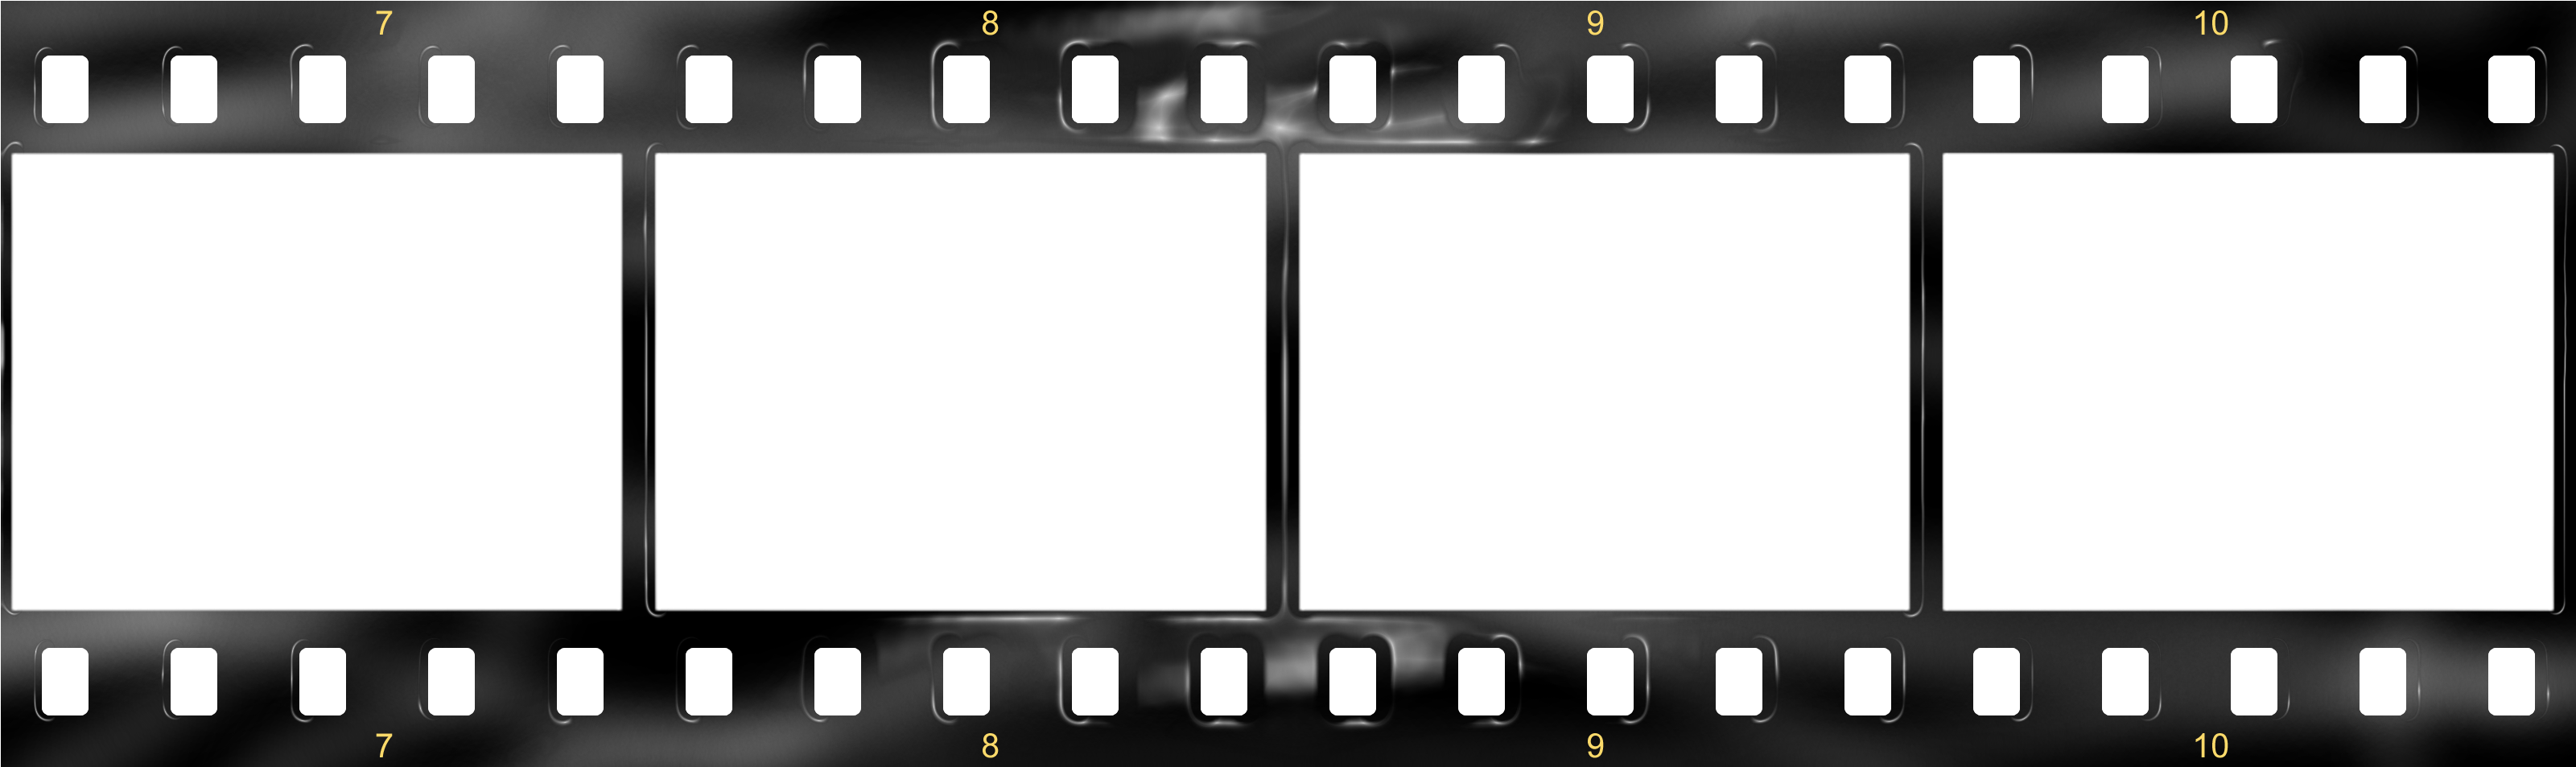 Download Filmstrip - Film Strip Template PNG Image with No ...